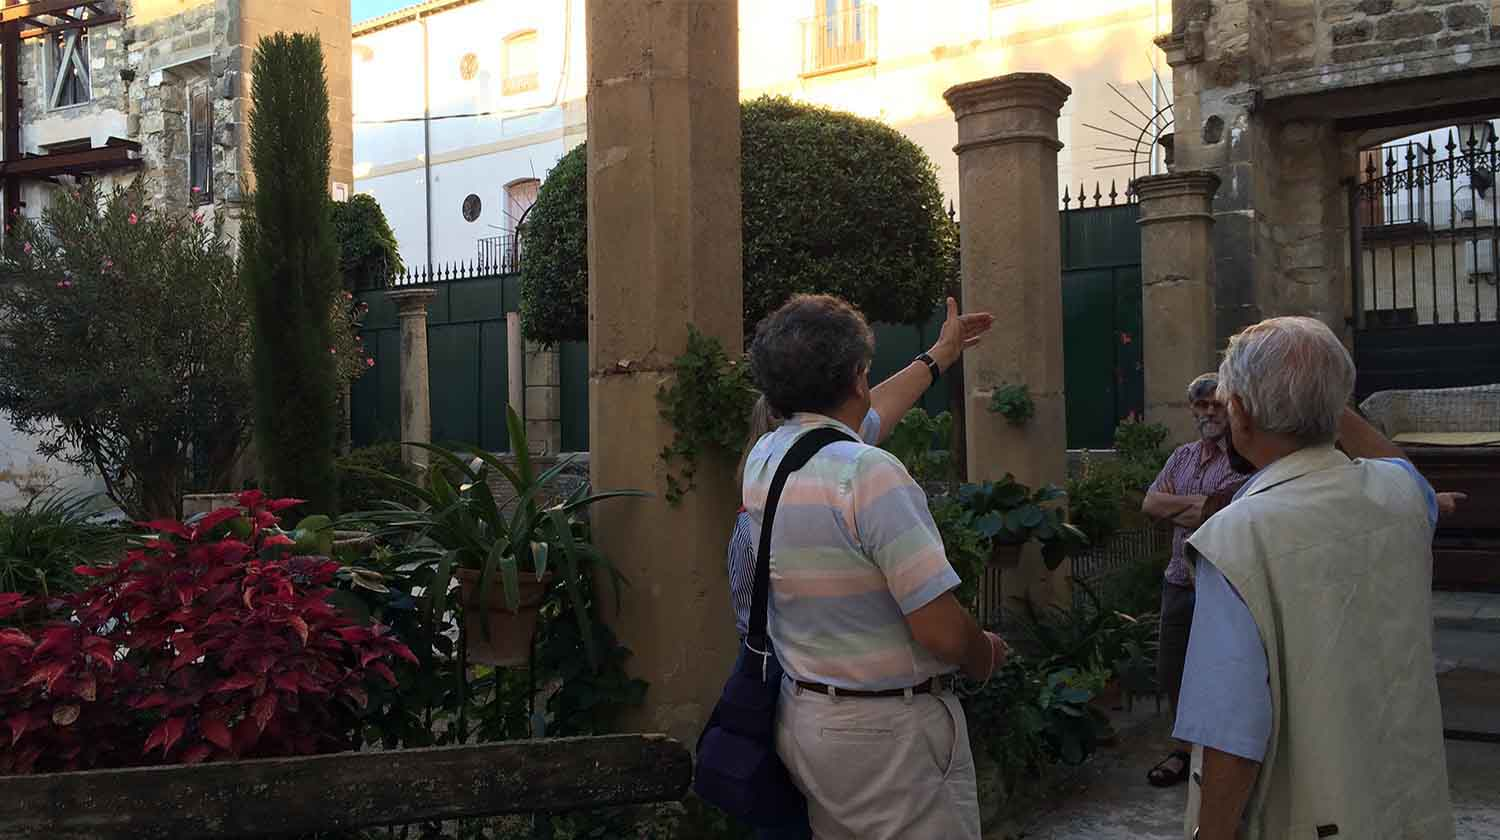 In the garden of the Renaissance Palace in Ubeda